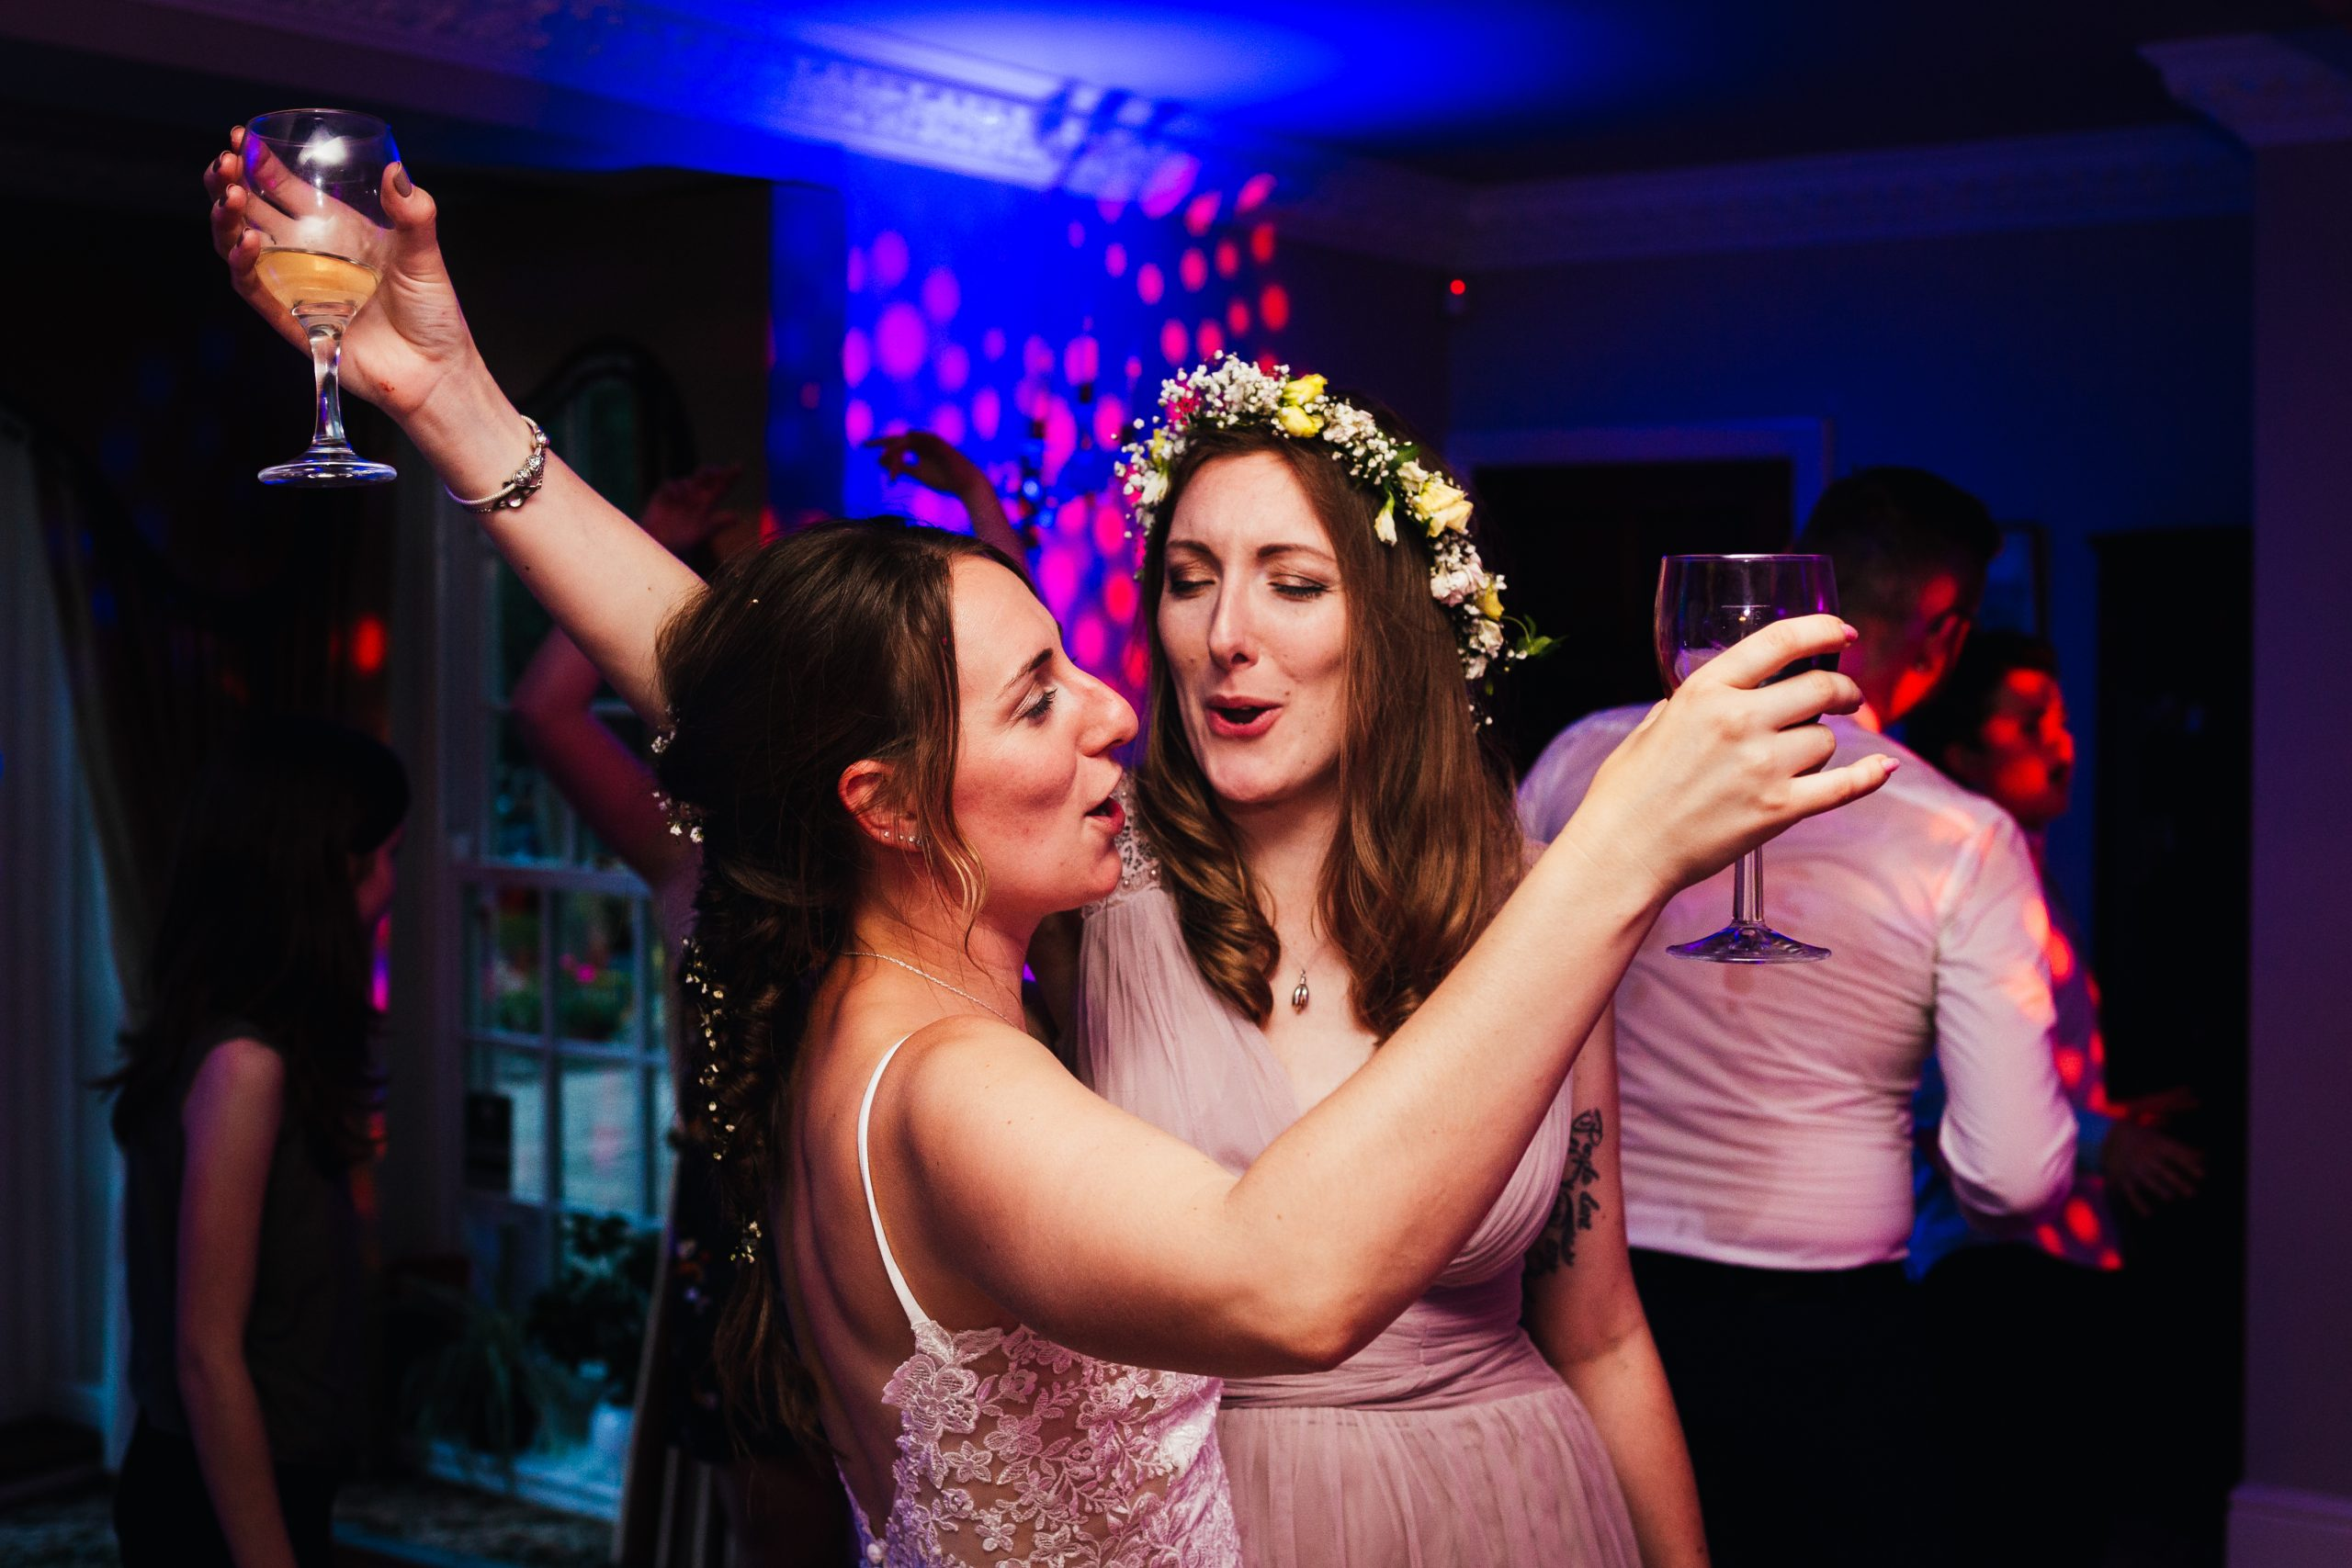 Choosing Your Wedding Photographer - Bride and bridesmaid dancing at wedding reception with wine glasses raised